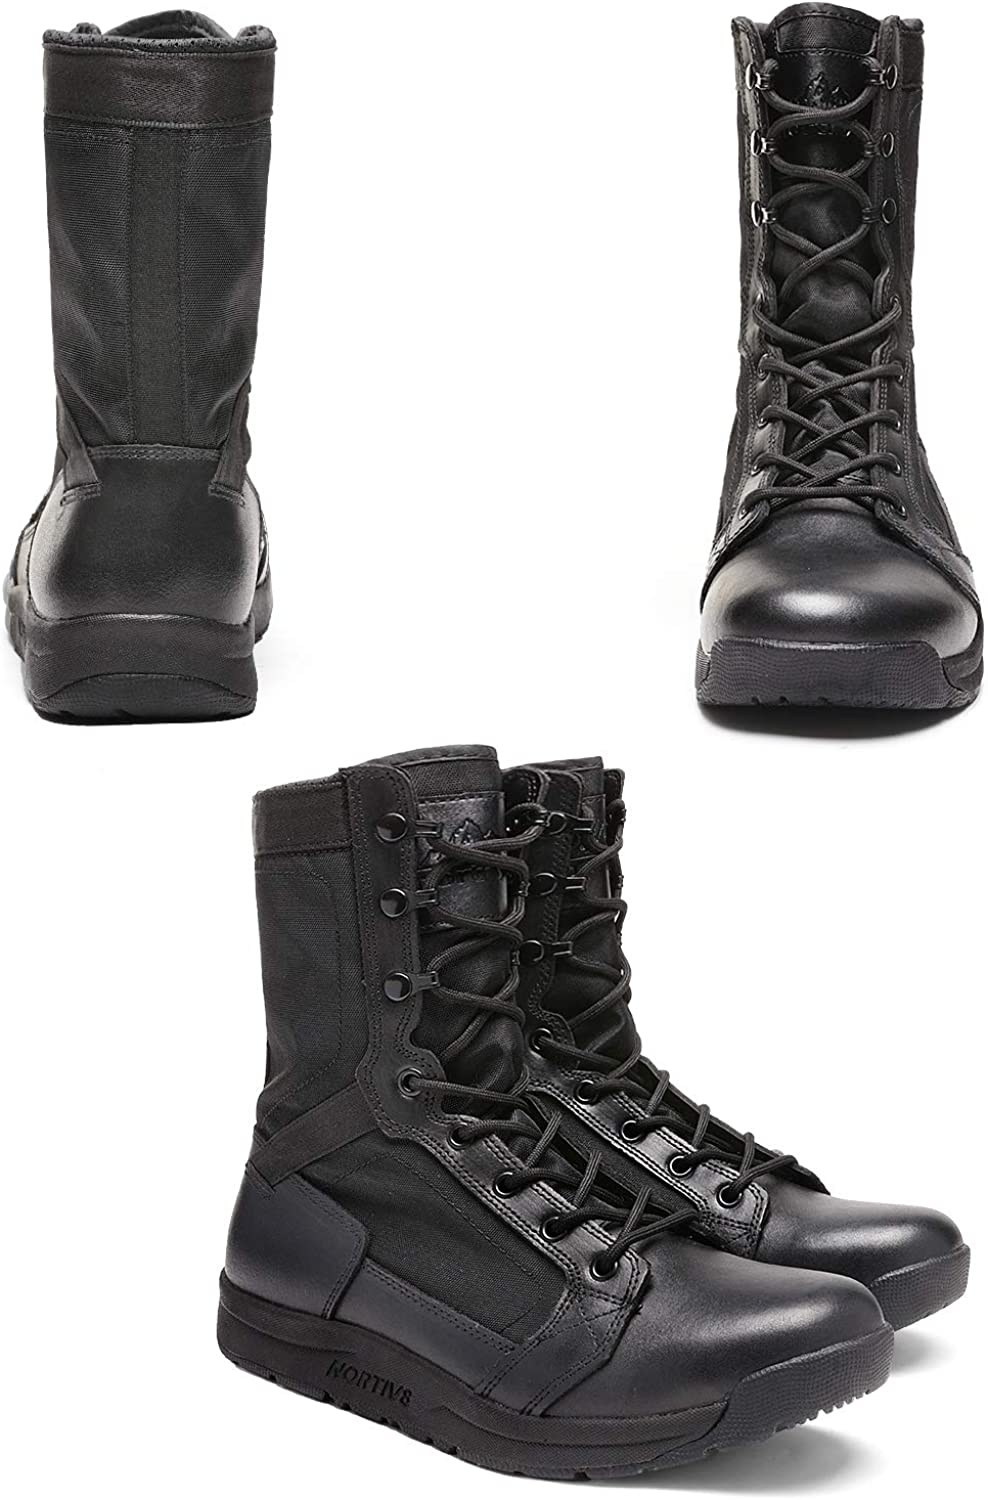 NORTIV 8 Mens Military Tactical Boots Lightweight Leather Work Bootie